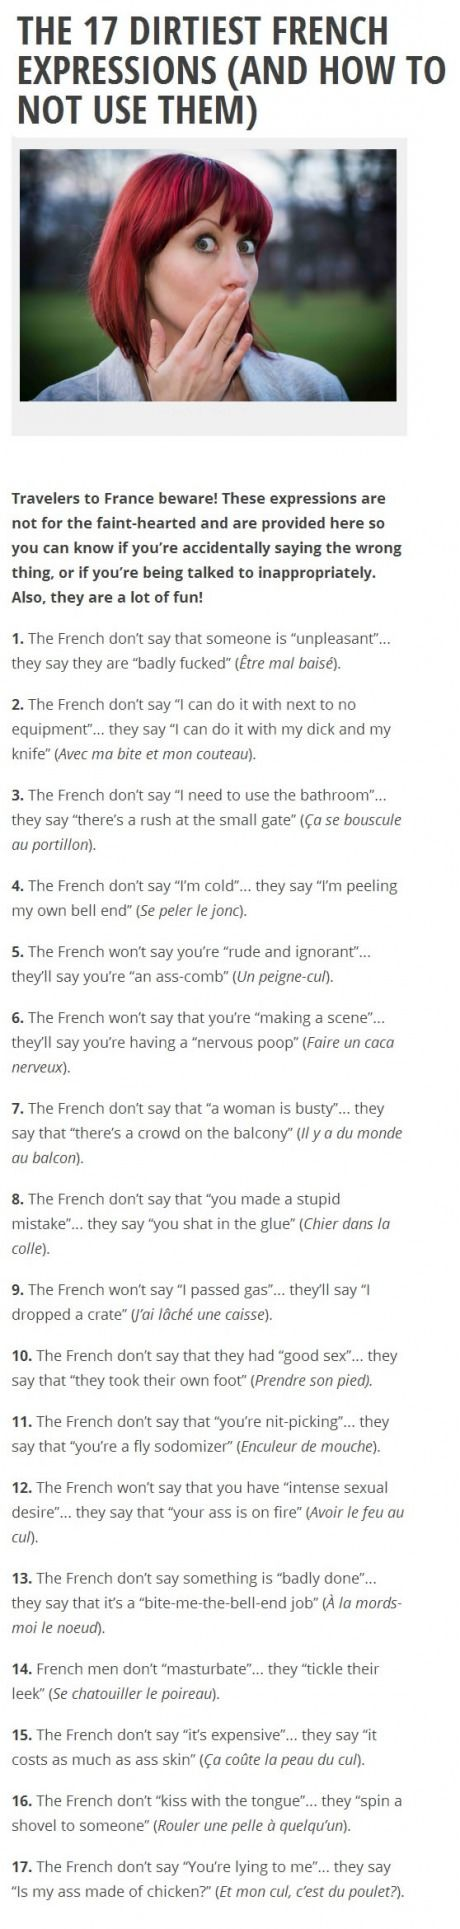 French - the most romantic language - has more meaning to it. These are some of their dirtiest expressions and how not to use them.